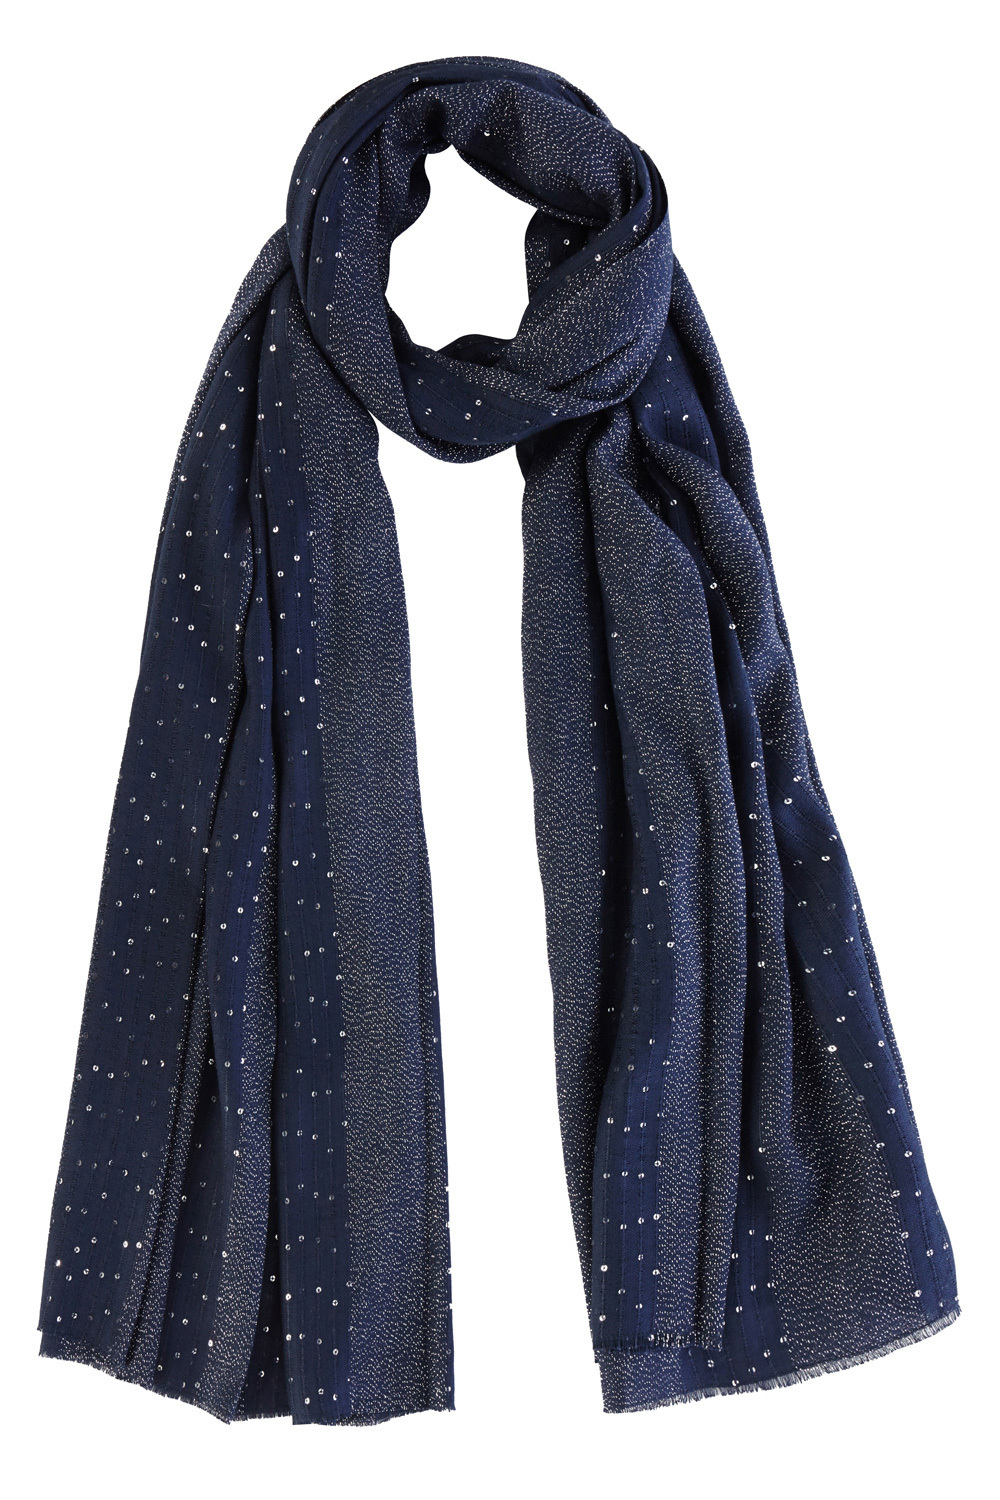 Lurex Sequin Scarf - predominant colour: navy; occasions: casual; type of pattern: standard; style: regular; size: standard; material: fabric; embellishment: sequins; pattern: plain; season: s/s 2016; wardrobe: highlight